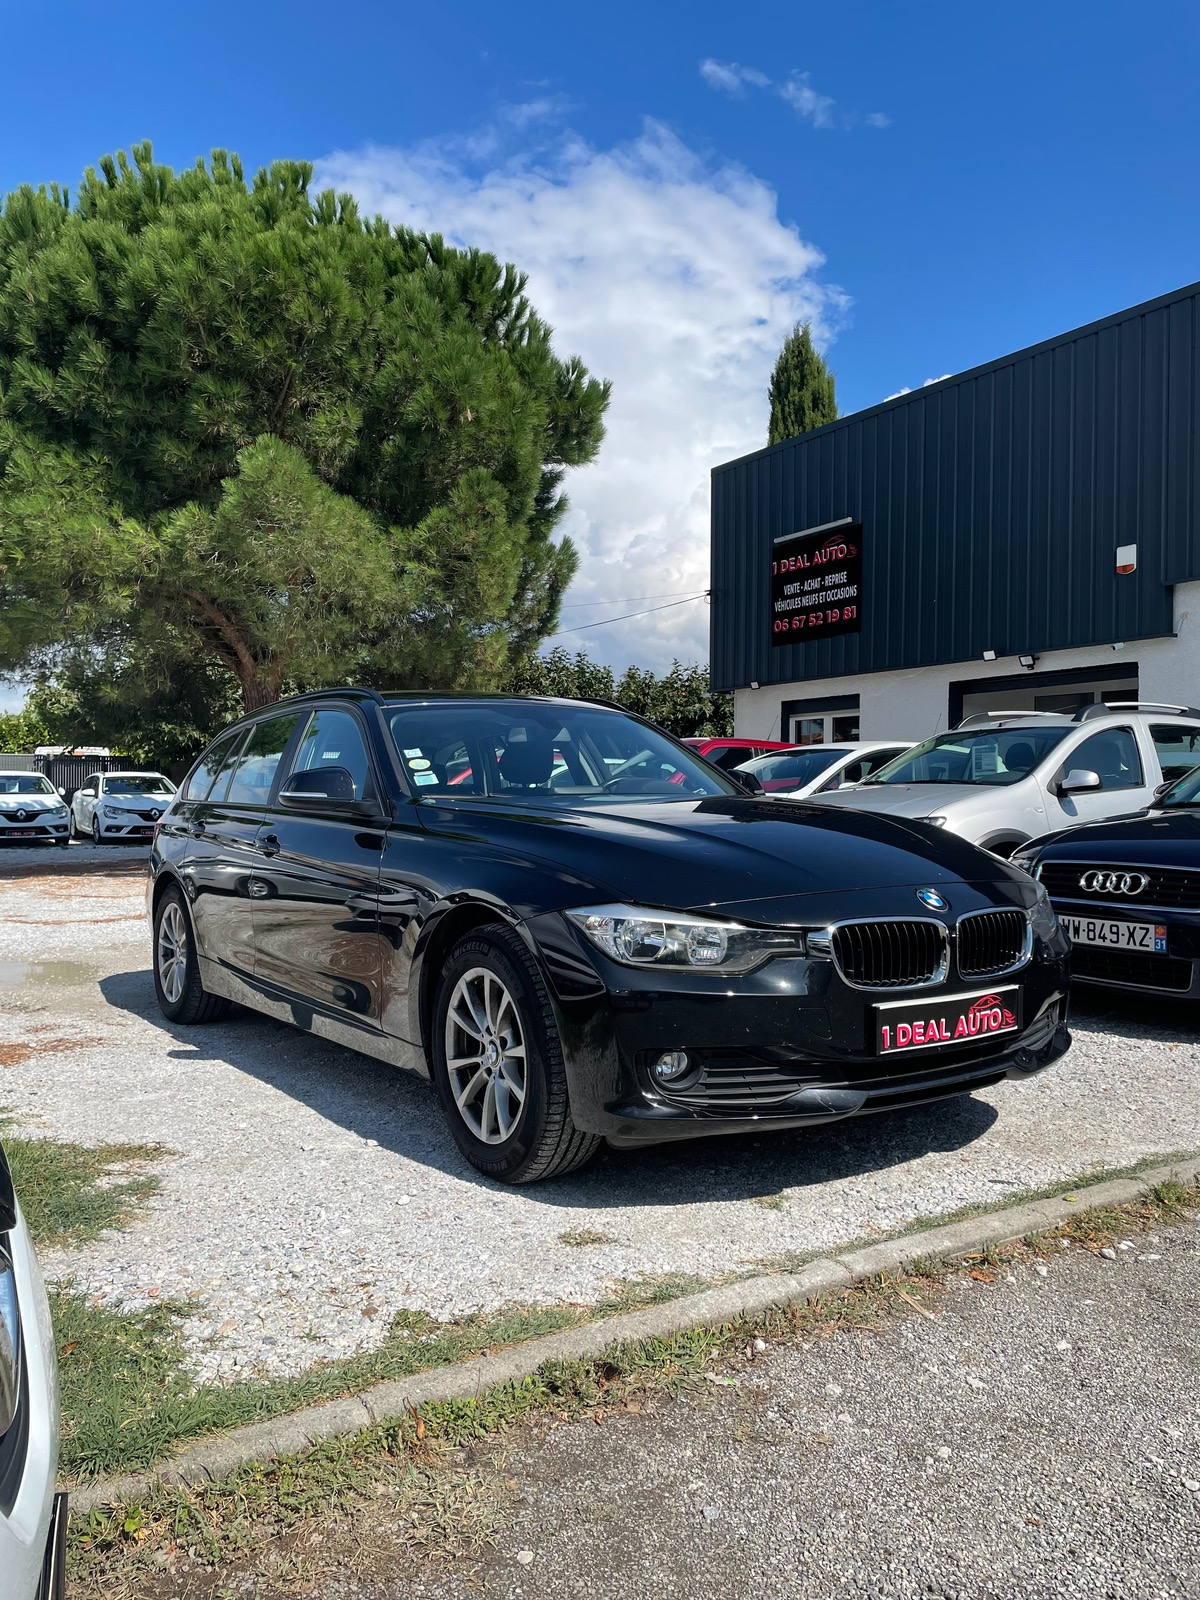 Bmw Serie 3 LOUNGE 316D 115 touring GPS 2015